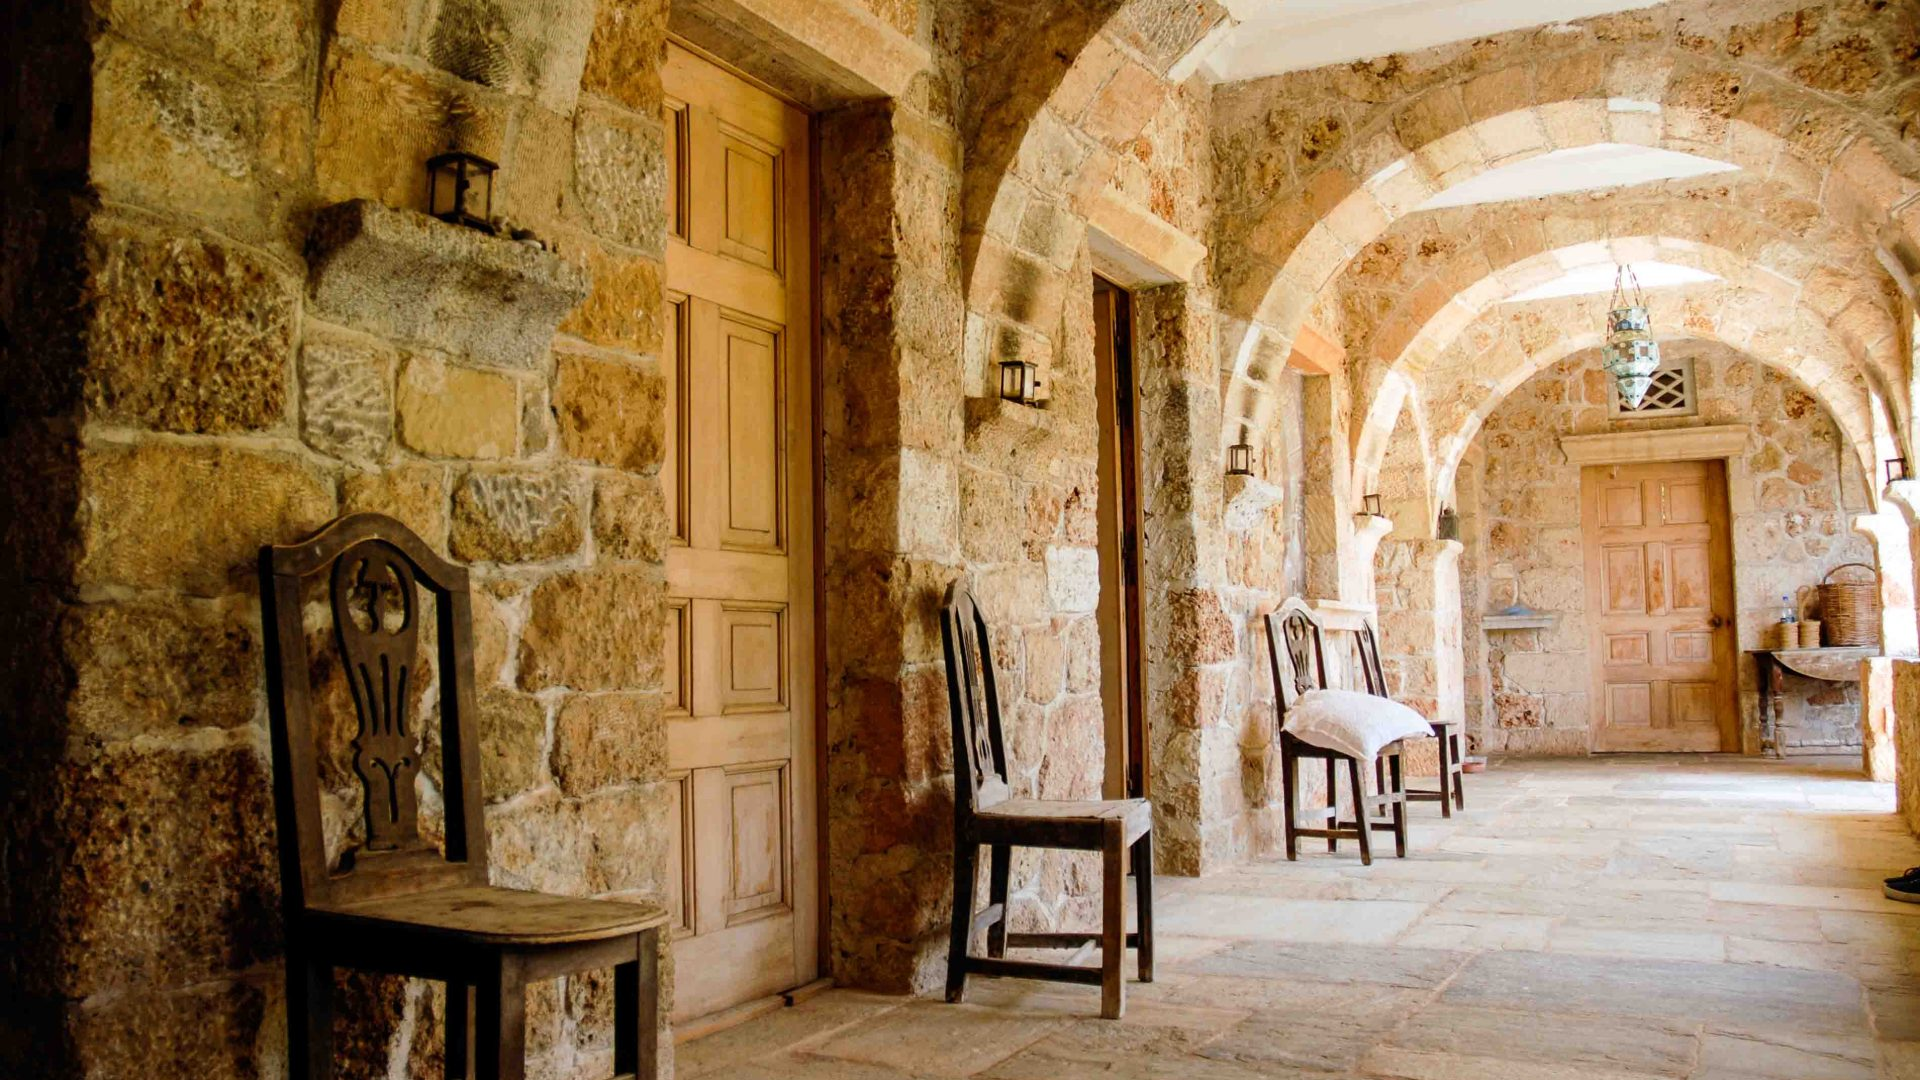 Labor of love: Gentle arches and natural light at Patrick Leigh Fermor's home in Greece's spectacular Mani peninsula.